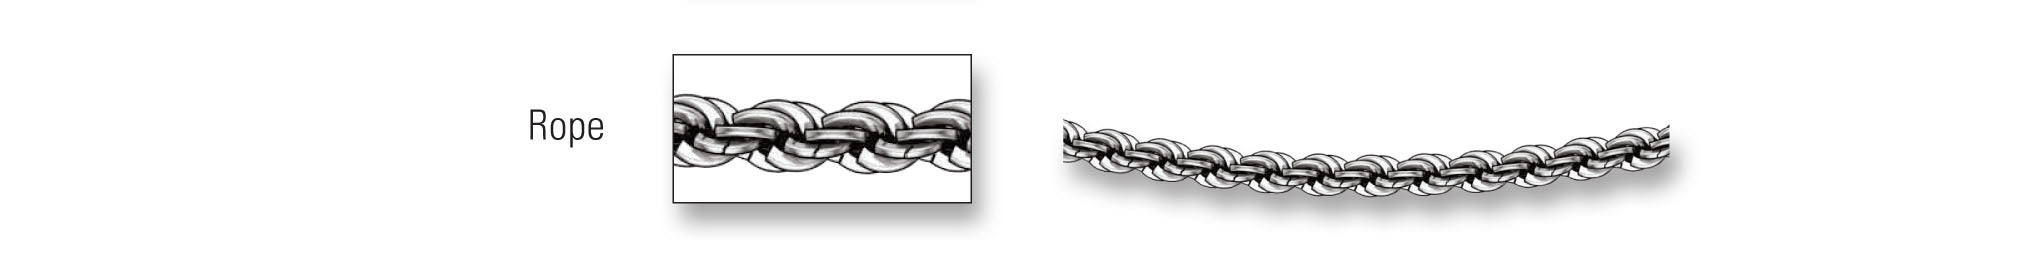 Chains - Rope Link Chain Image